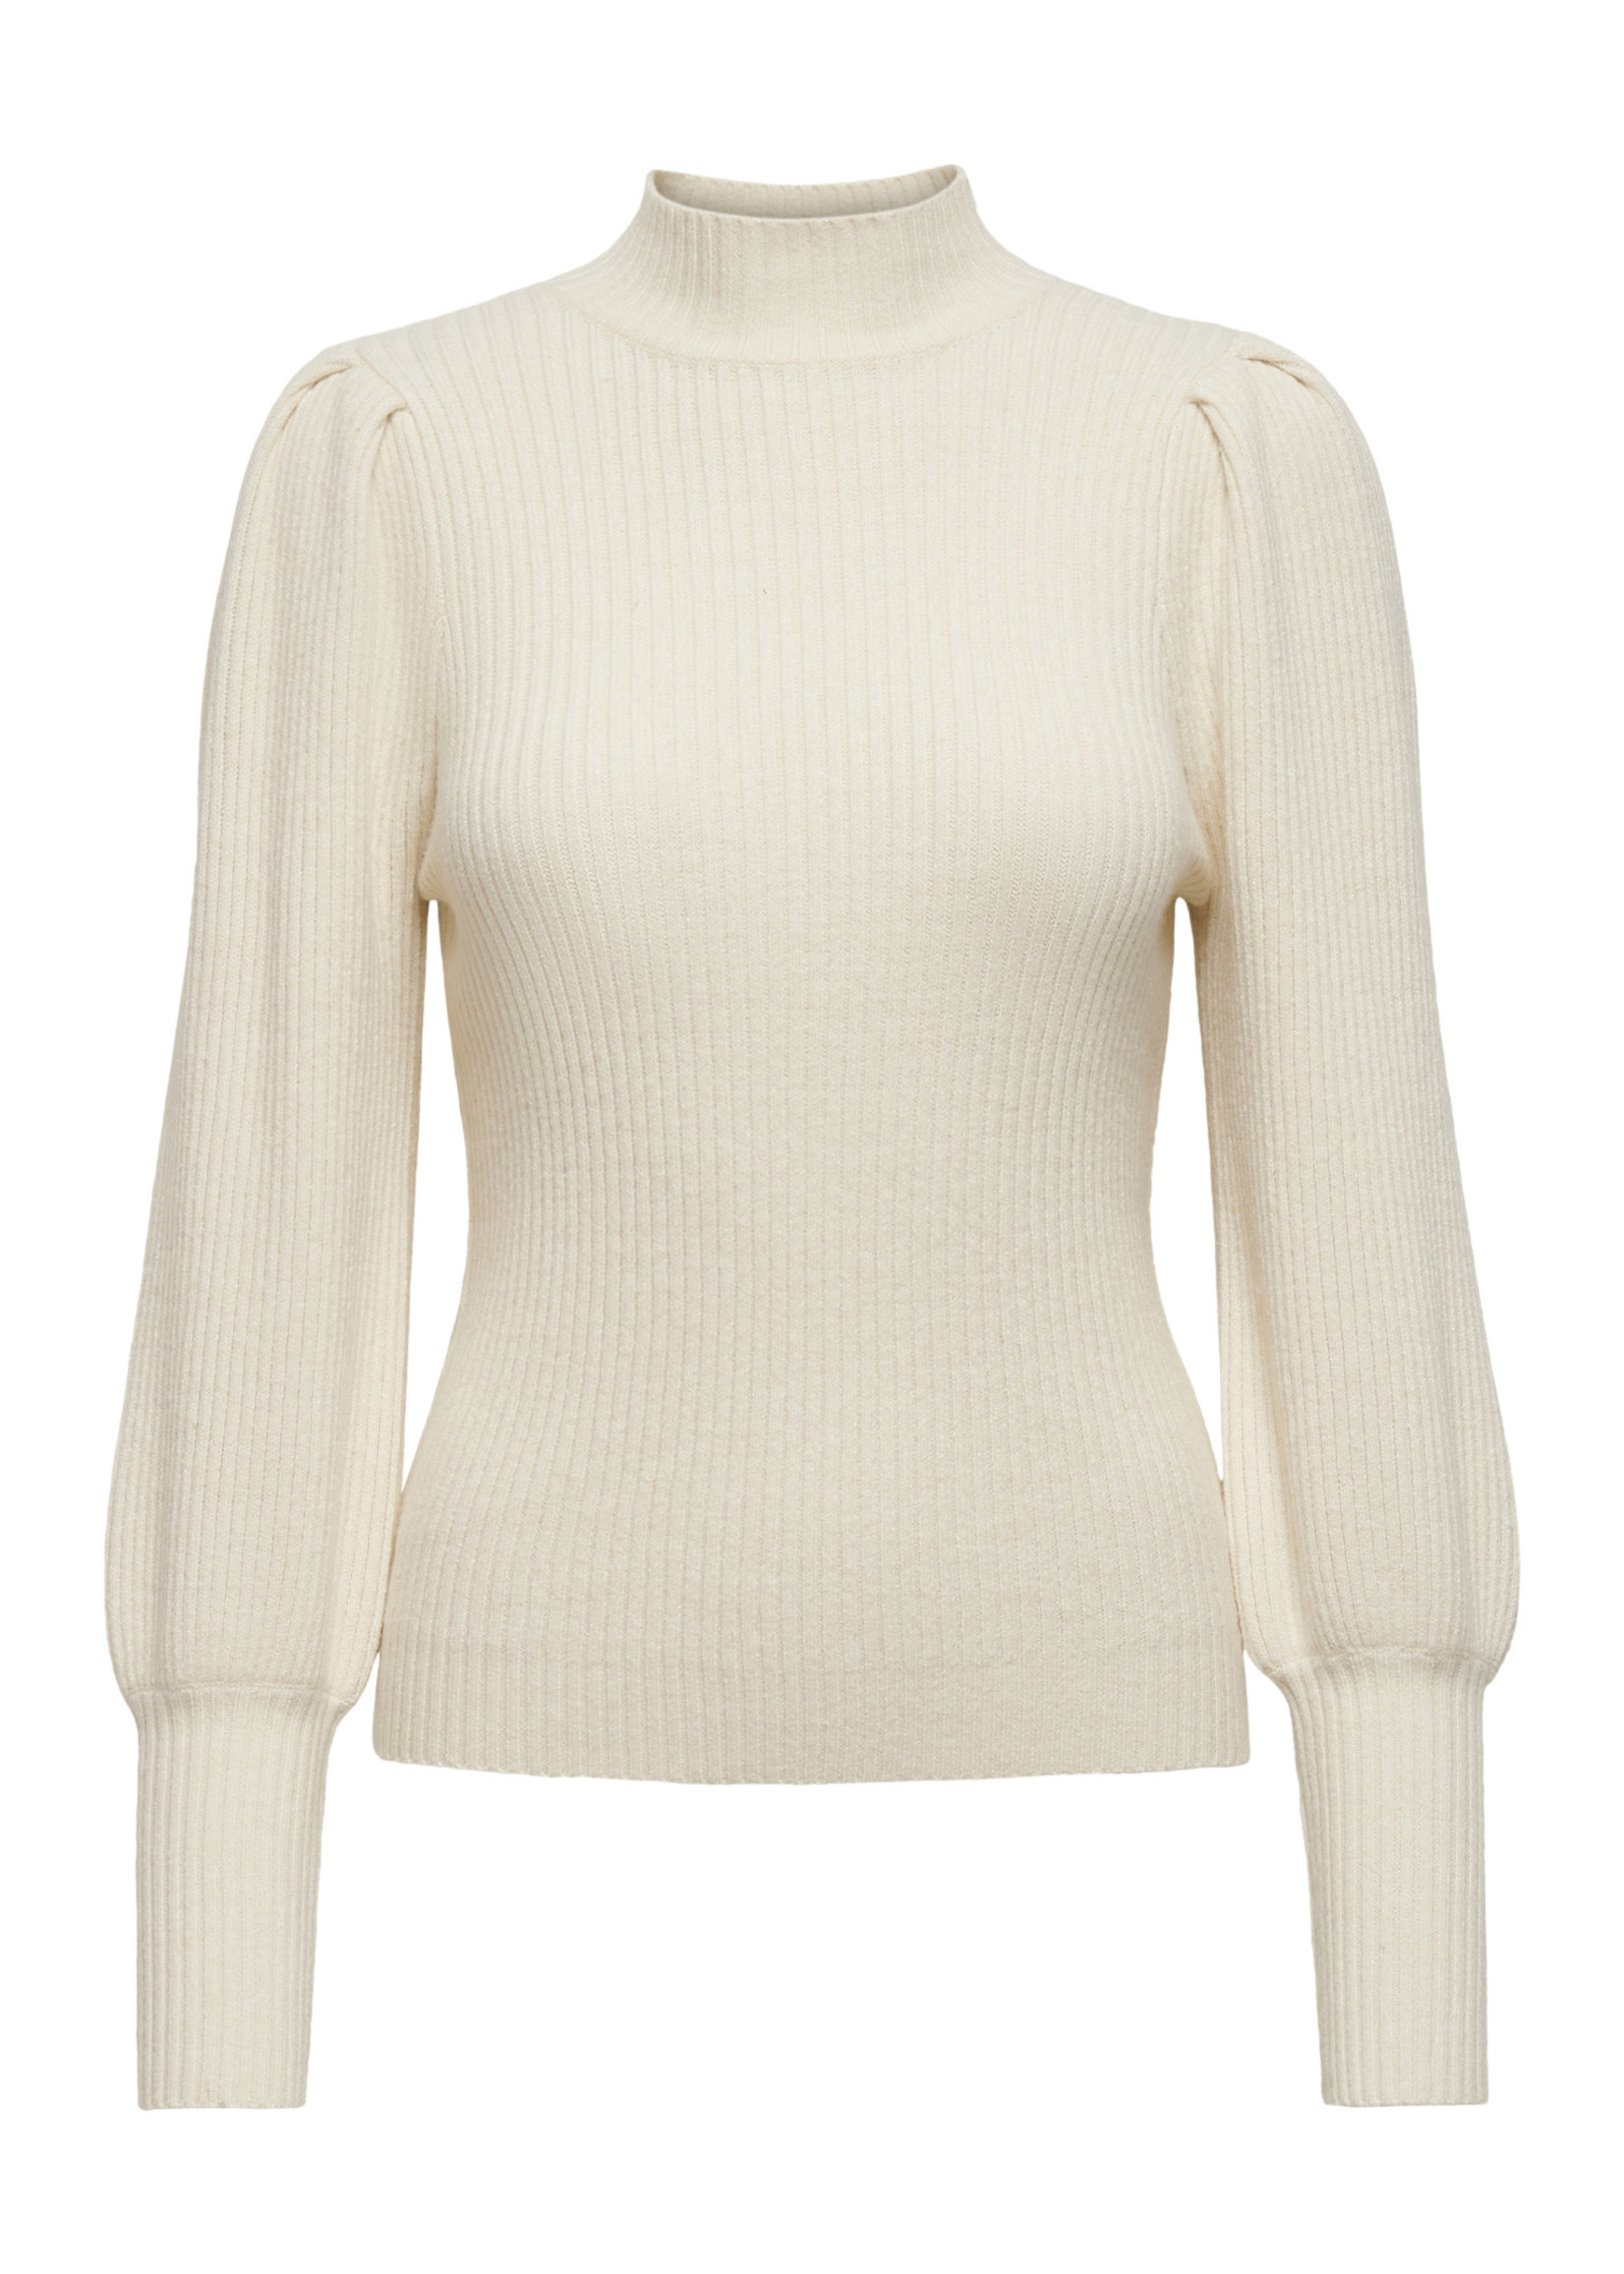 ONLY KATIA L/S HIGHNECK PULLOVER CC KNT whitecape gray